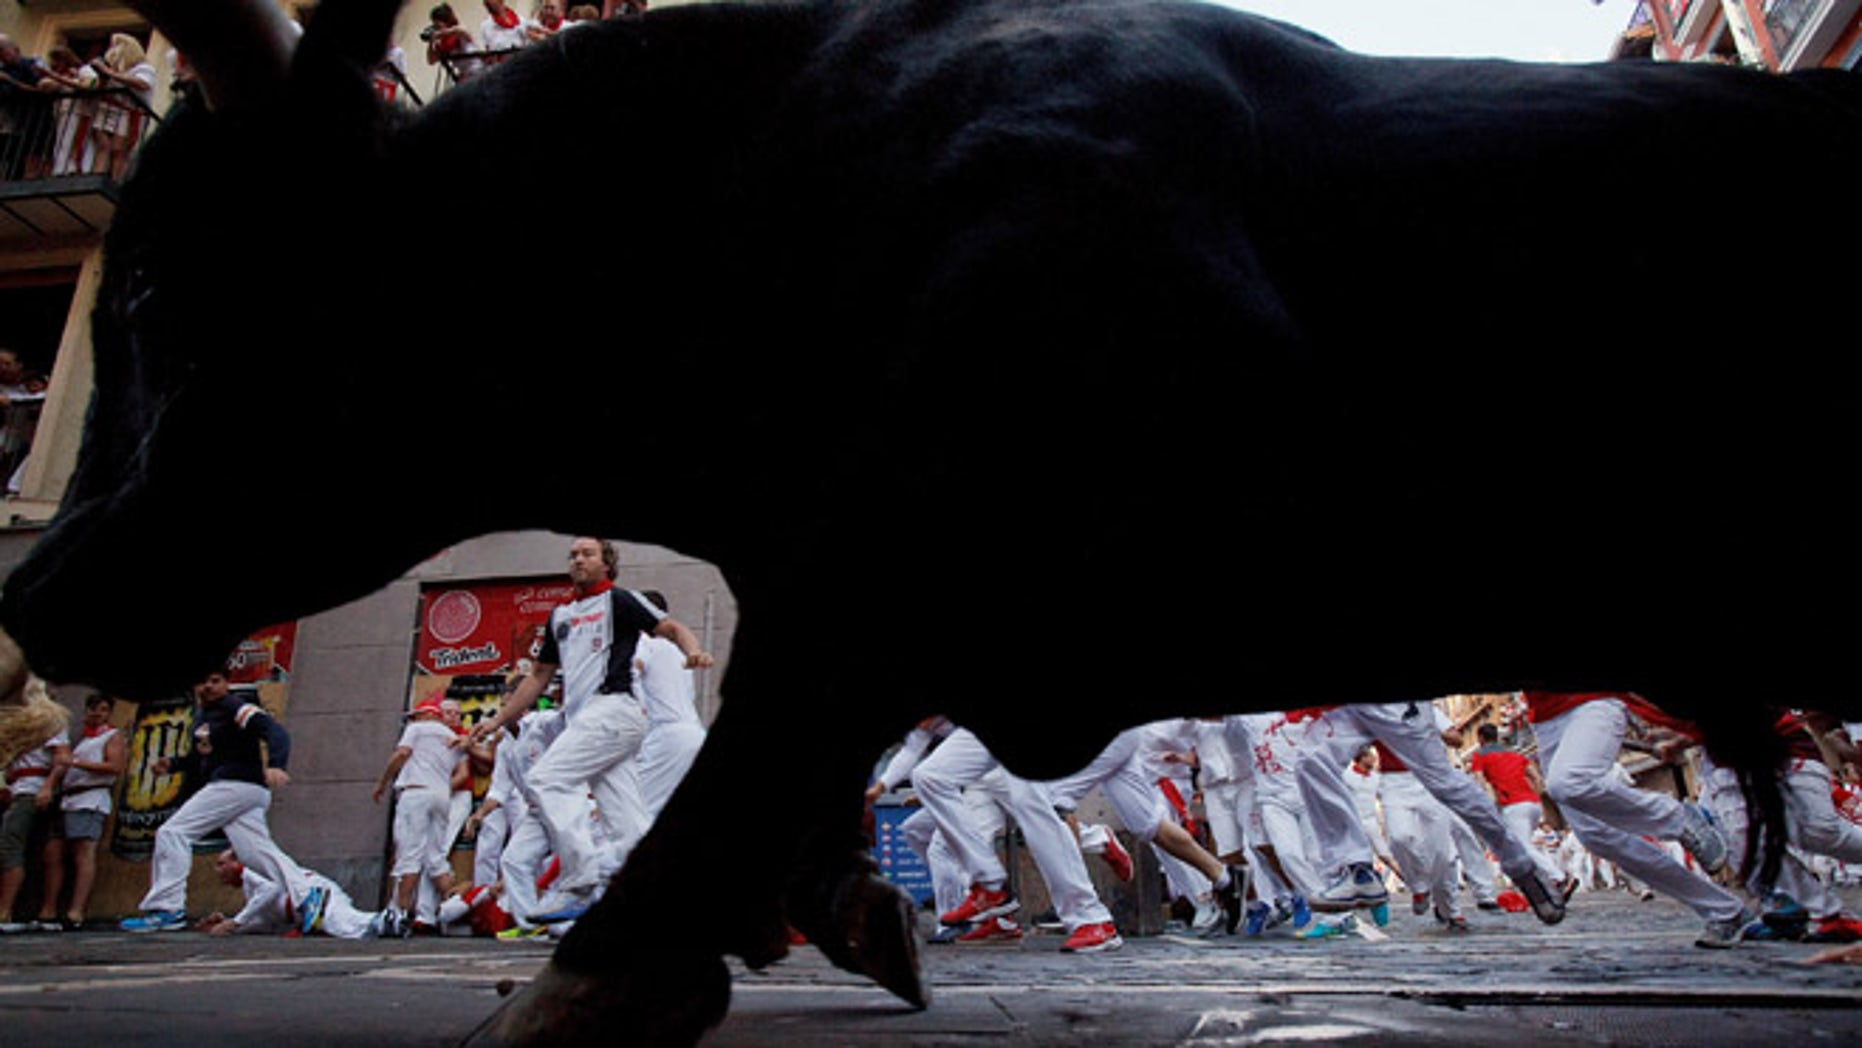 PAMPLONA, SPAIN - JULY 08:  Revellers run with Cebada Gago's fighting bulls entering Estafeta Street during the third day of the San Fermin Running of the Bulls festival on July 8, 2016 in Pamplona, Spain. The annual Fiesta de San Fermin, made famous by the 1926 novel of US writer Ernest Hemmingway entitled 'The Sun Also Rises', involves the daily running of the bulls through the historic heart of Pamplona to the bull ring.  (Photo by Pablo Blazquez Dominguez/Getty Images)